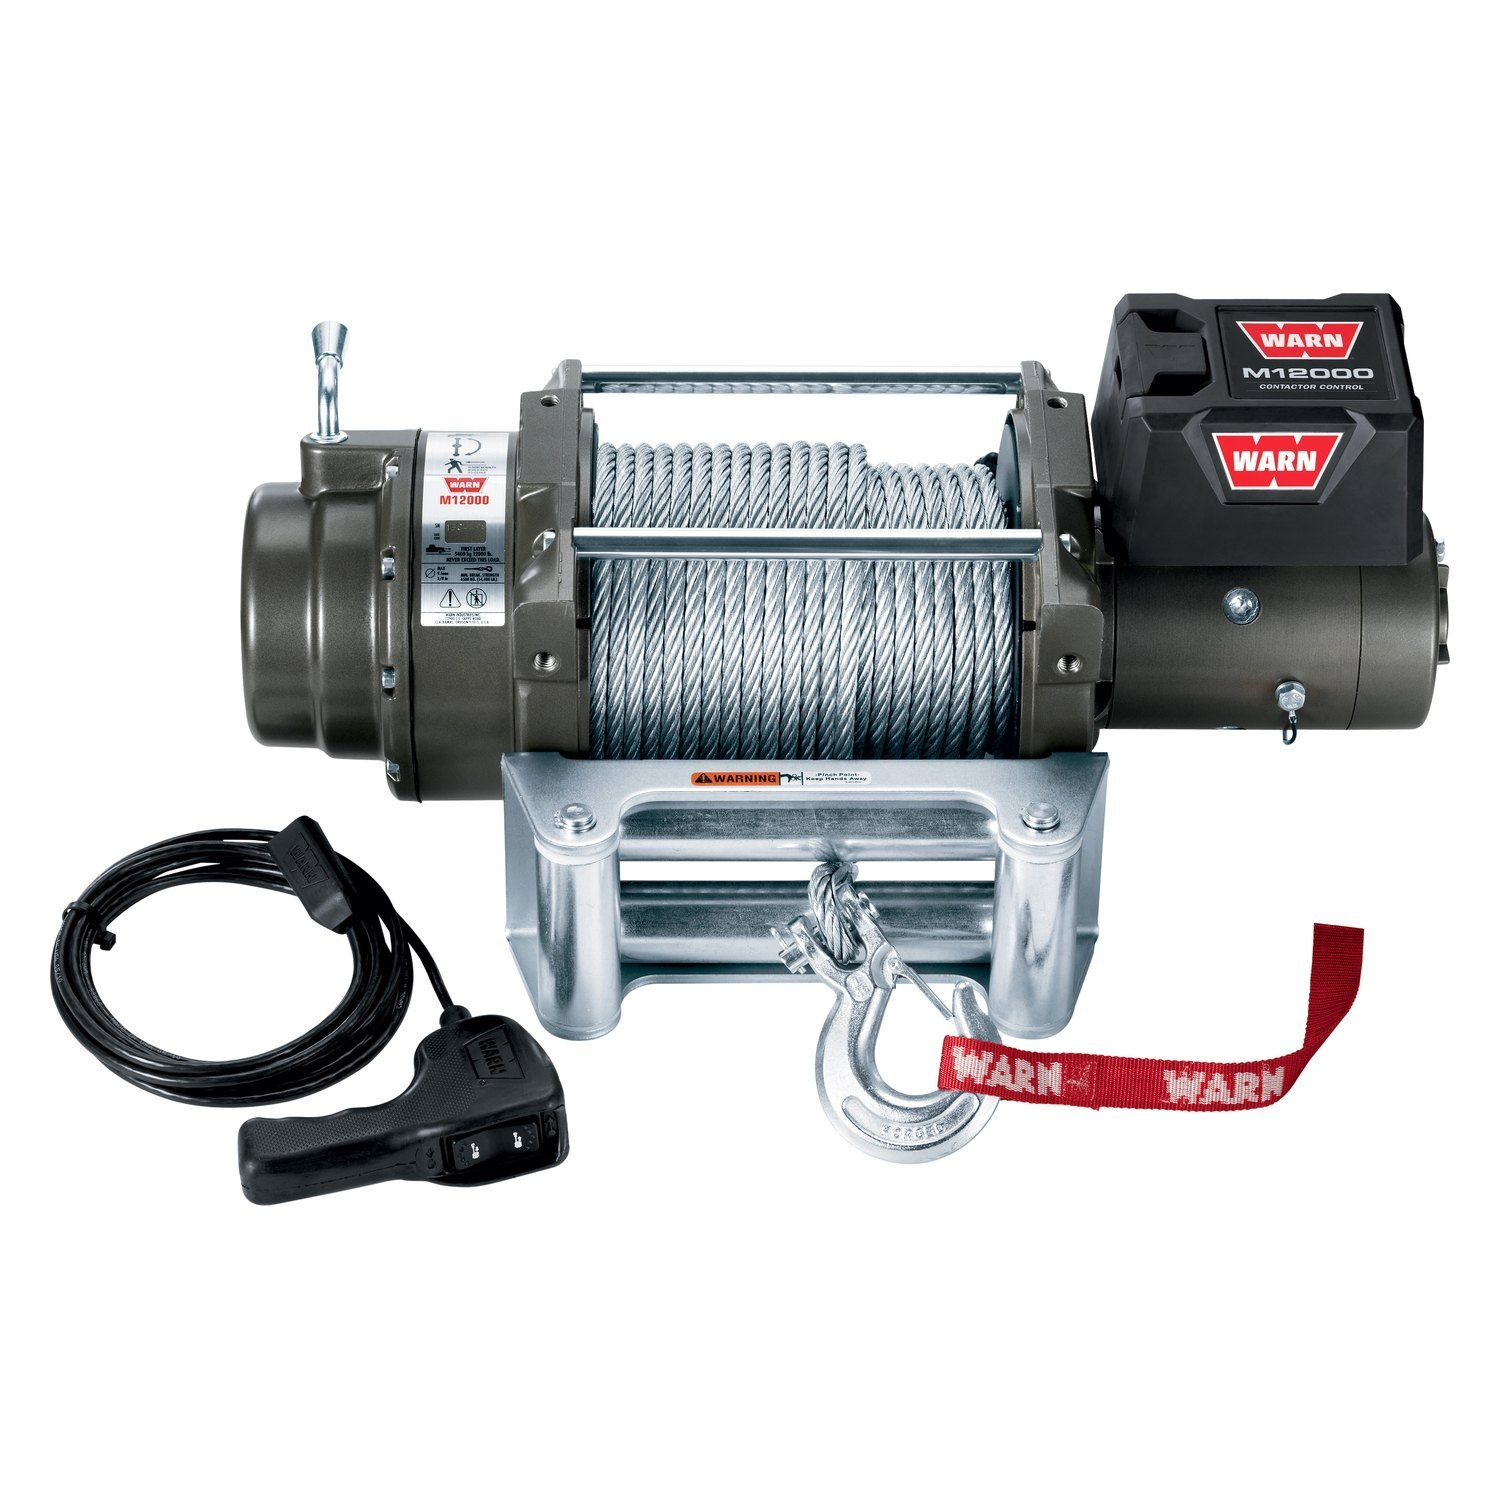 warn winch romex wire diagram m series self recovery electric with rope